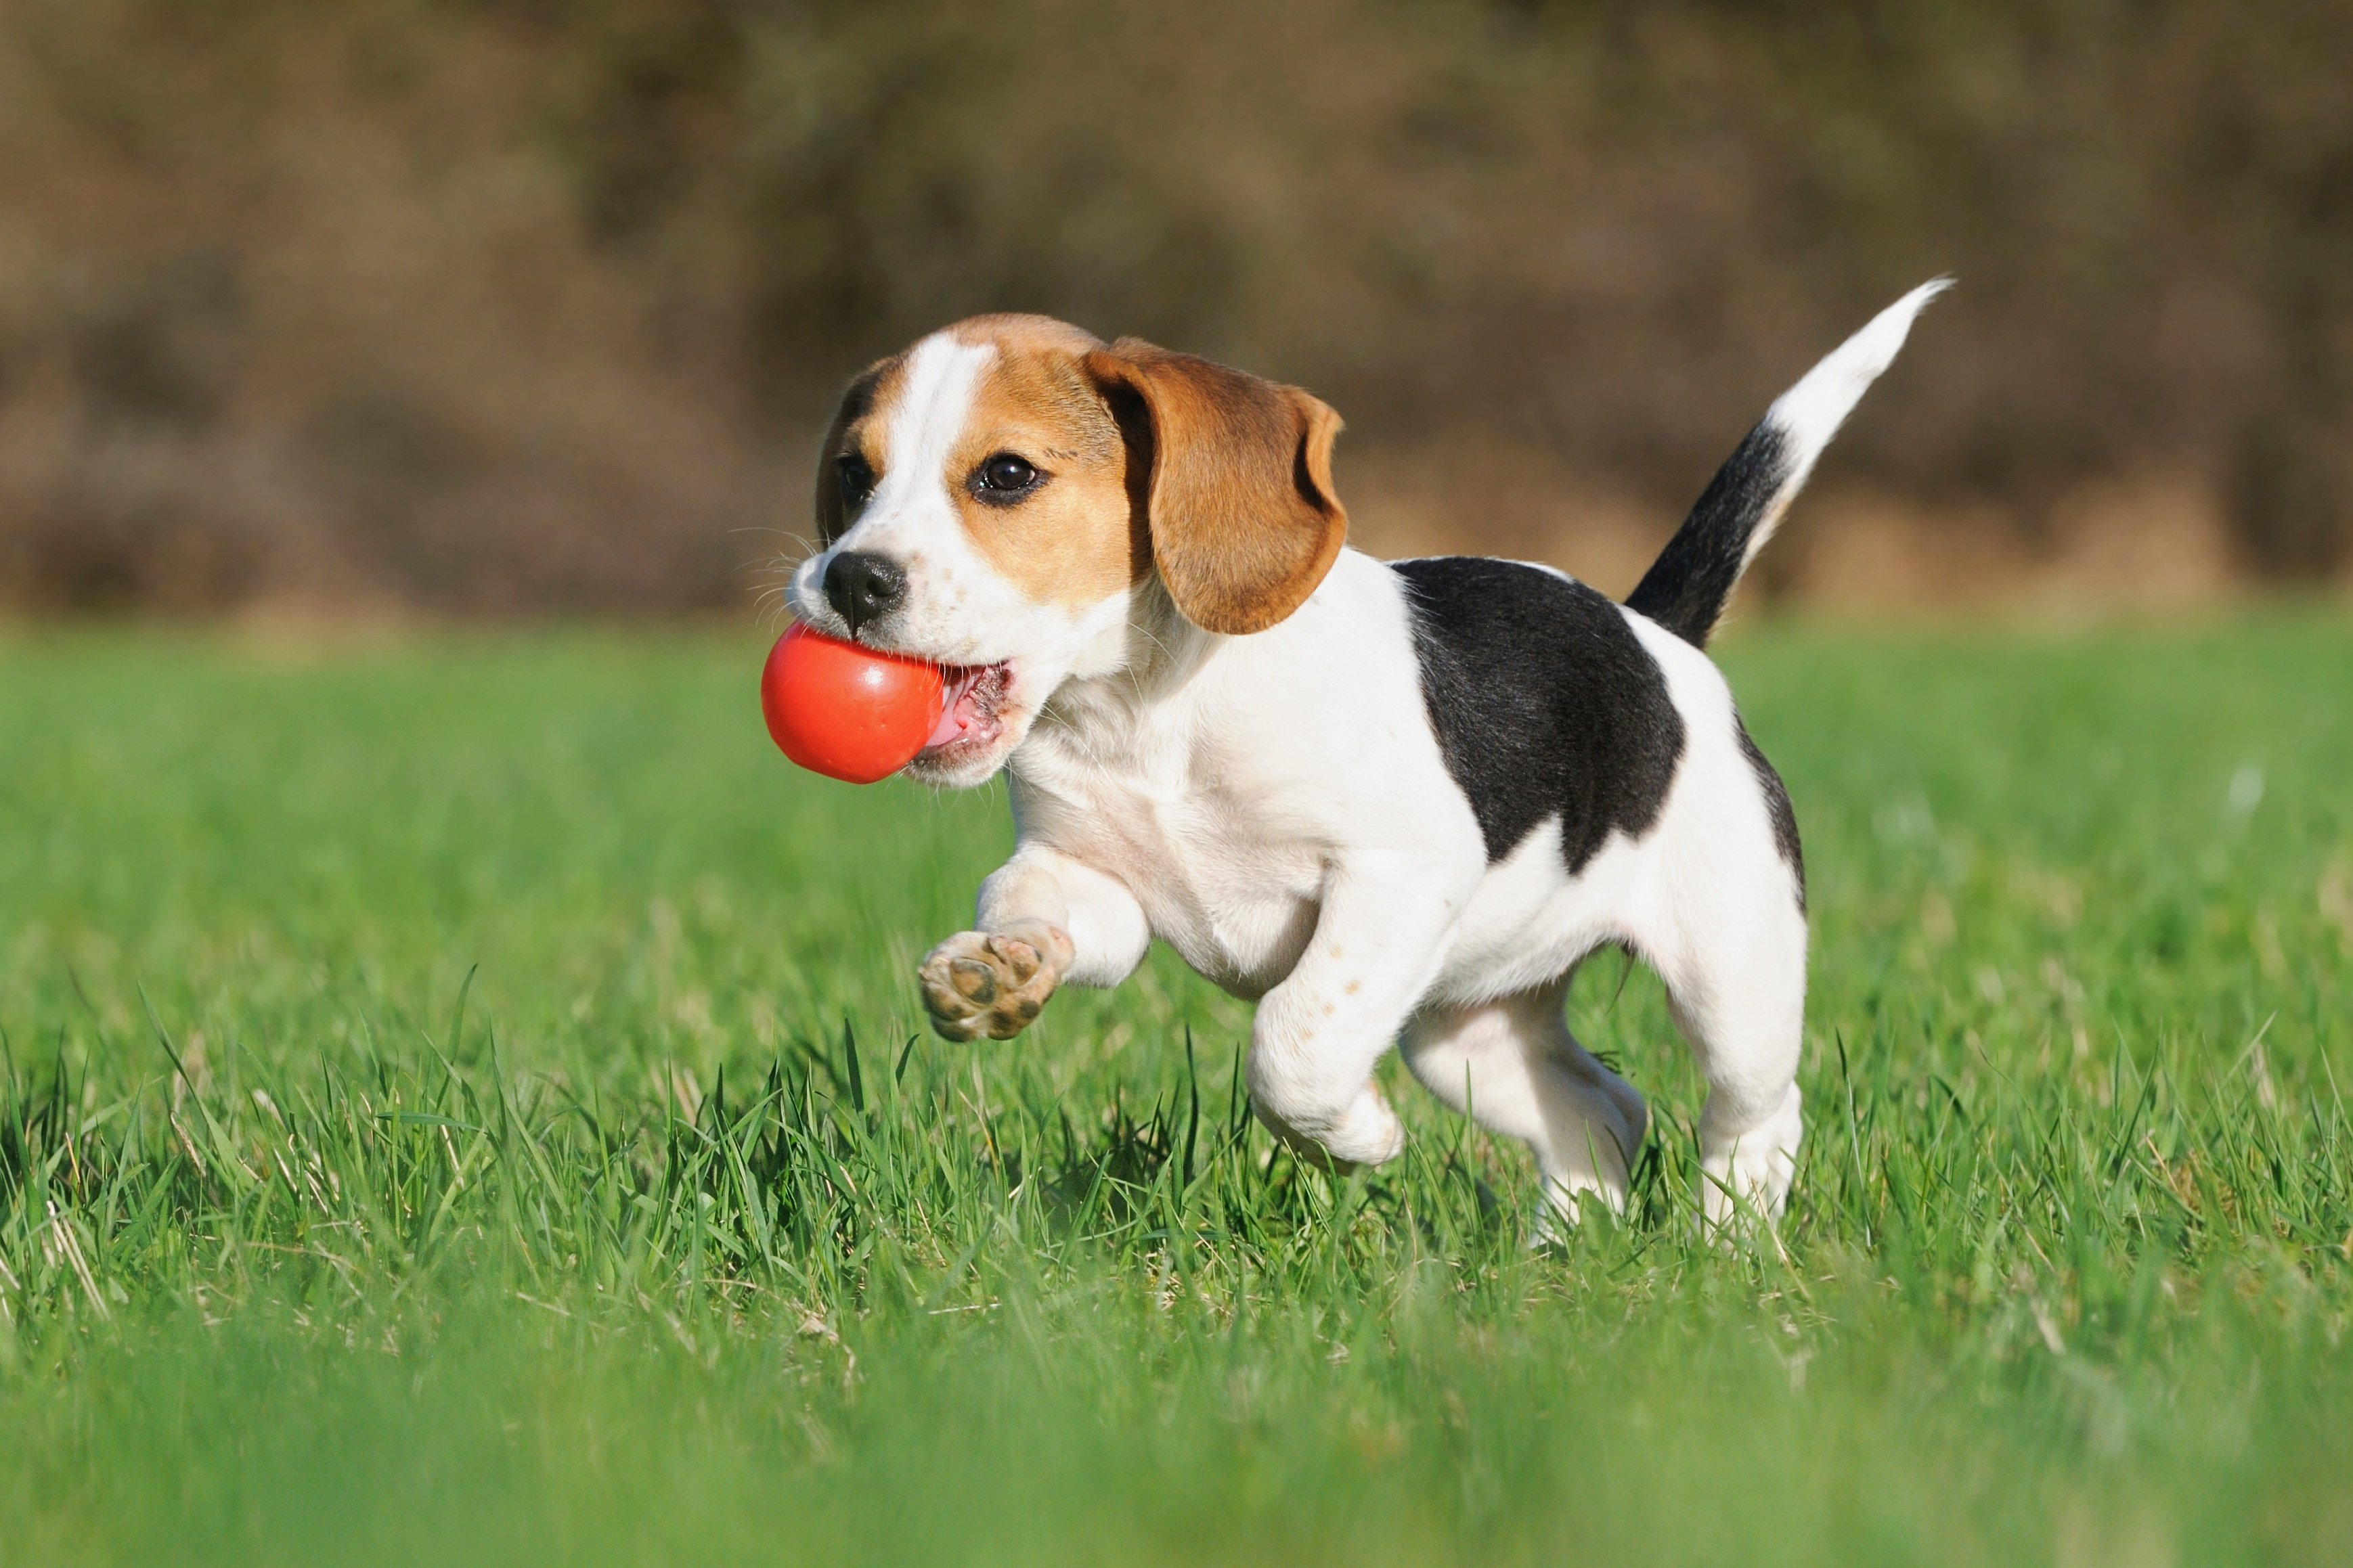 Beagle_playing_with_ball_on_organic_lawn.jpg